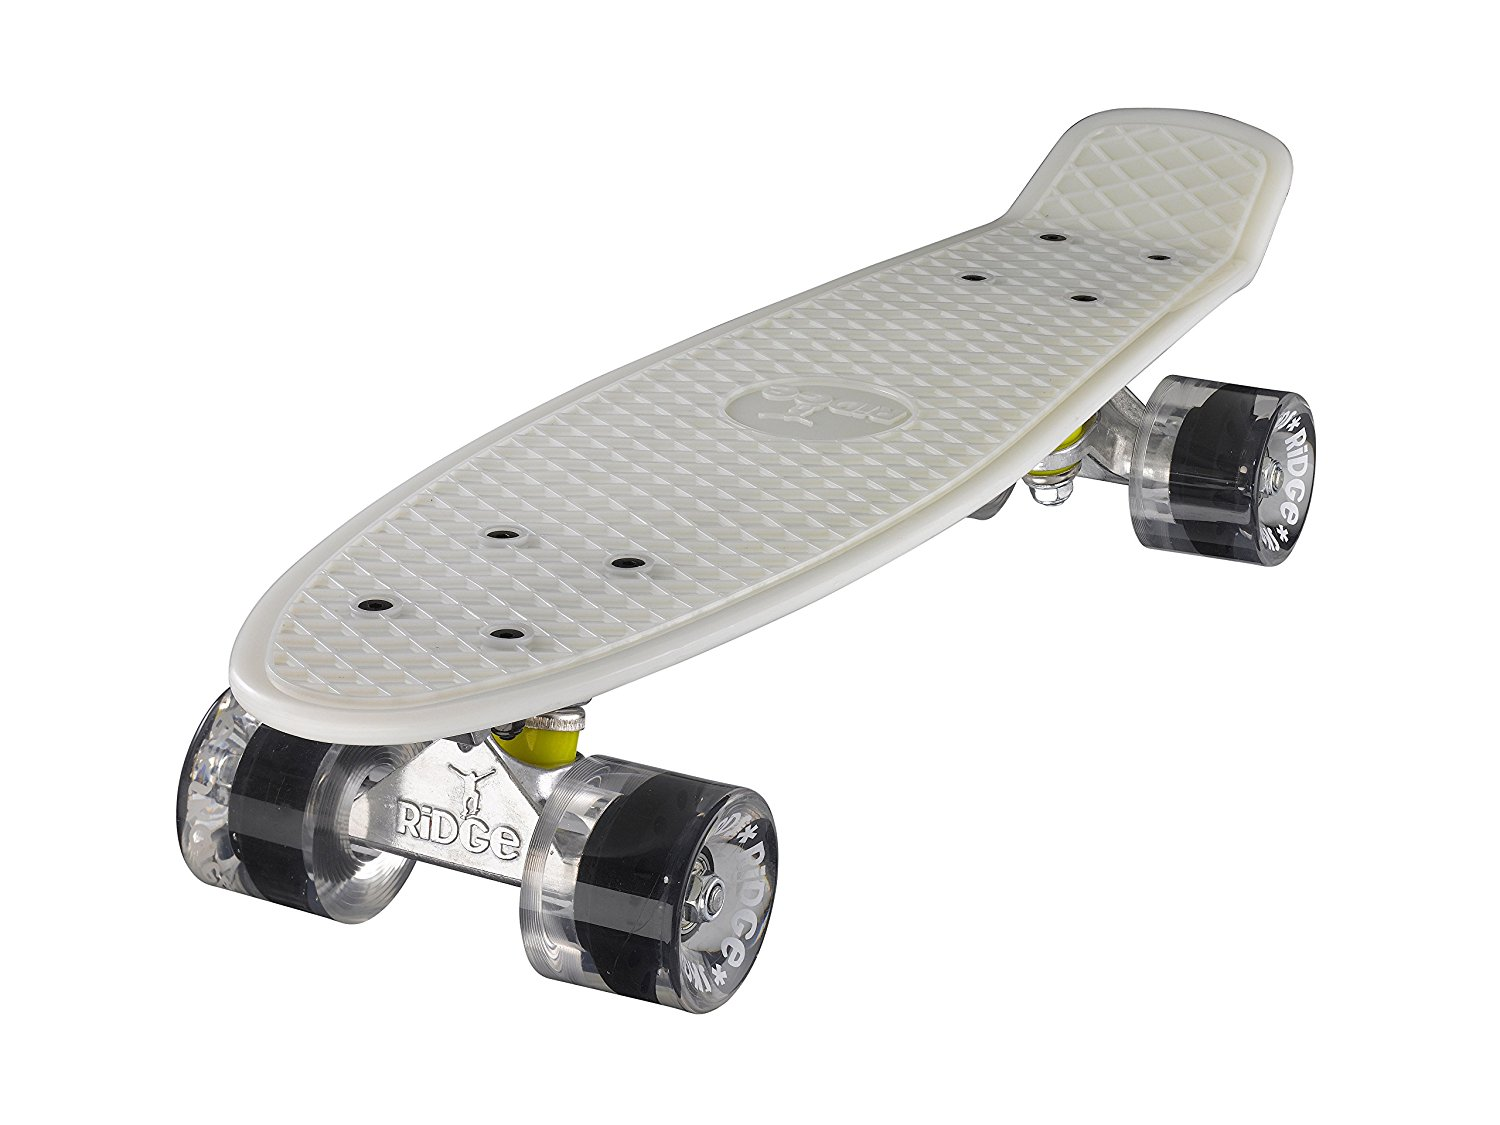 Ridge Mini Skateboard amazon